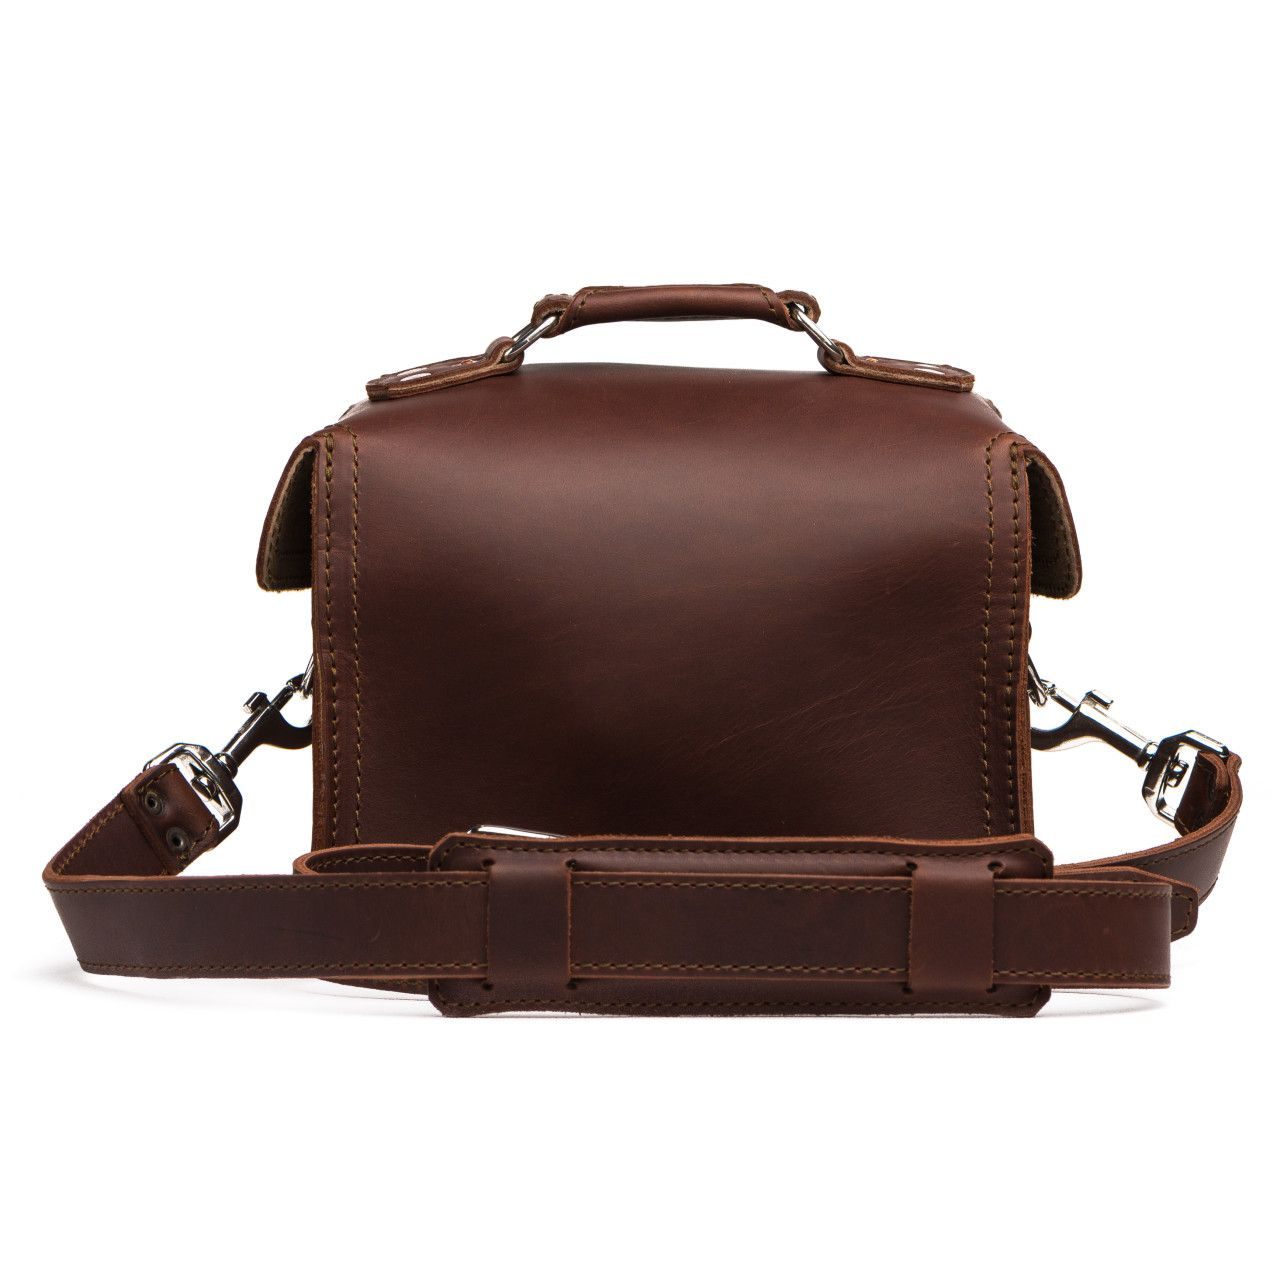 leather gadget bag medium in chestnut leather